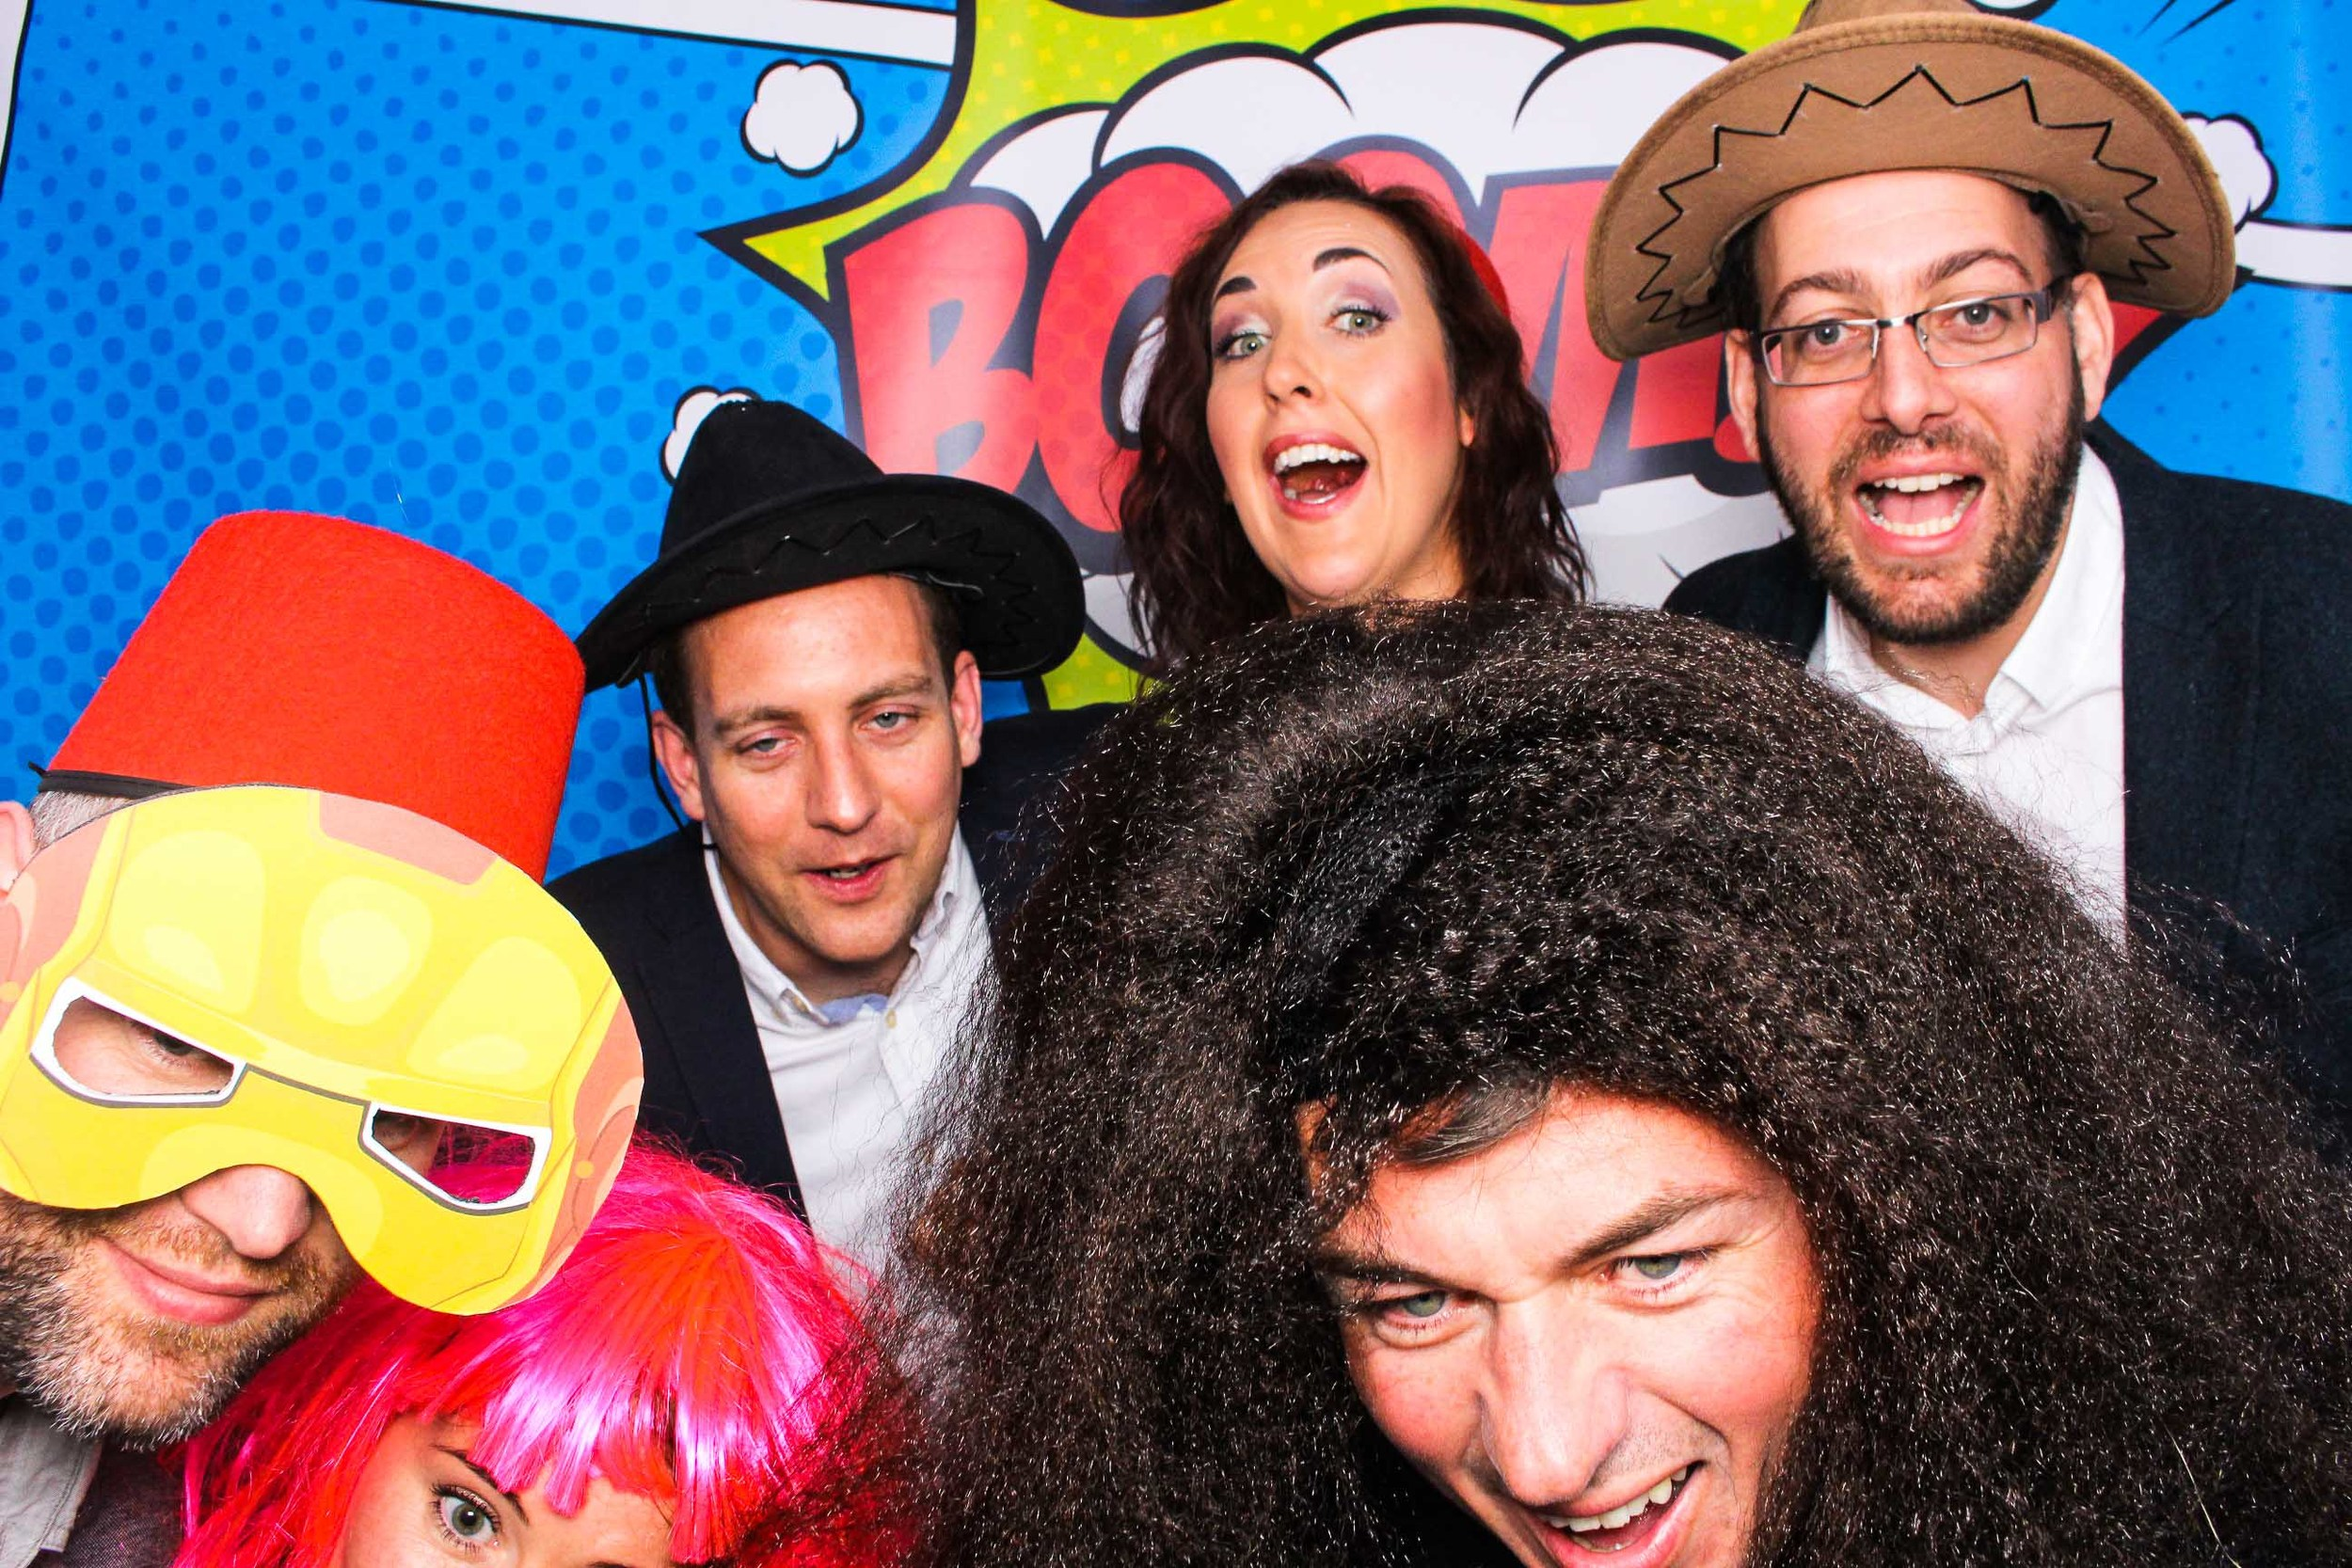 Fotoauto Photo Booth Hire - Shop Direct-258.jpg